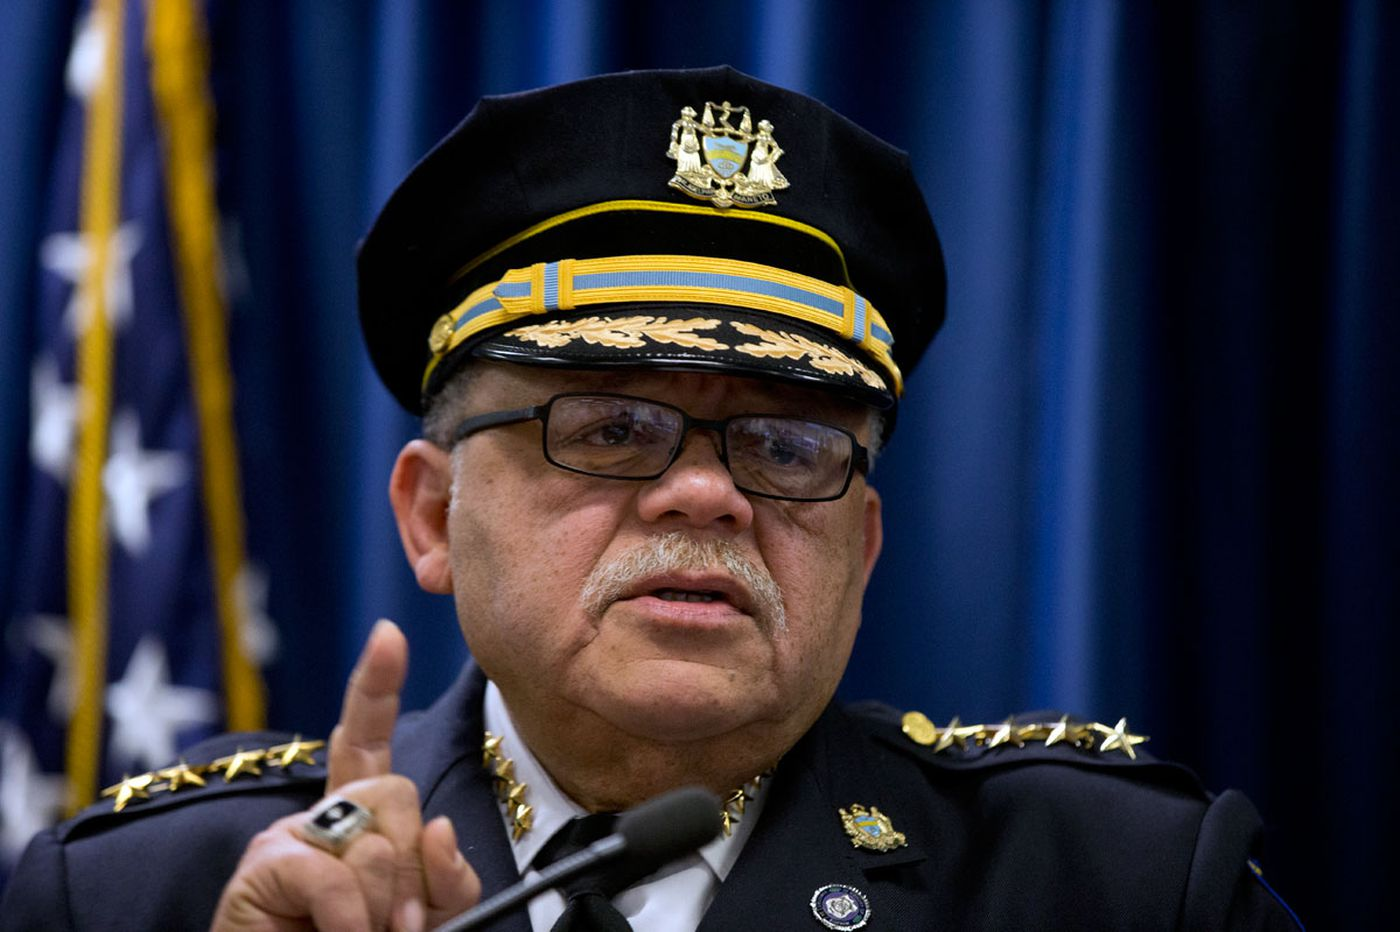 Ex-Philly police chief Charles Ramsey: U.S. is 'sitting on a powder keg'